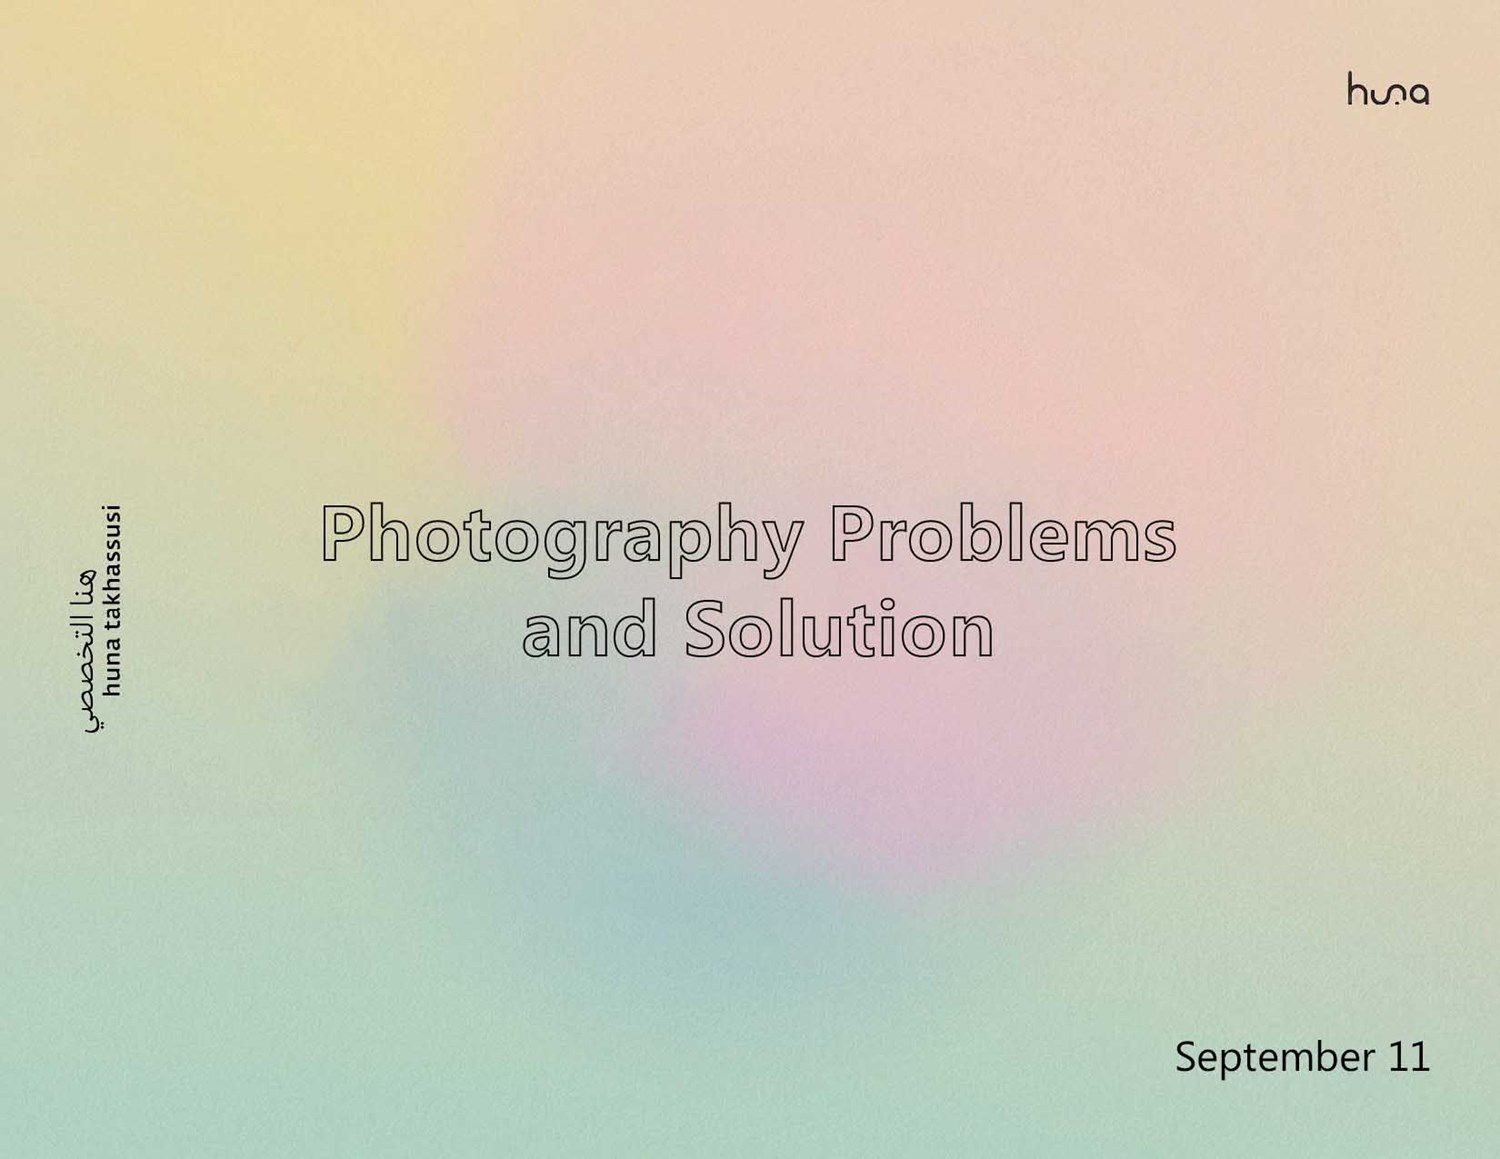 Photography Problems and Solutions